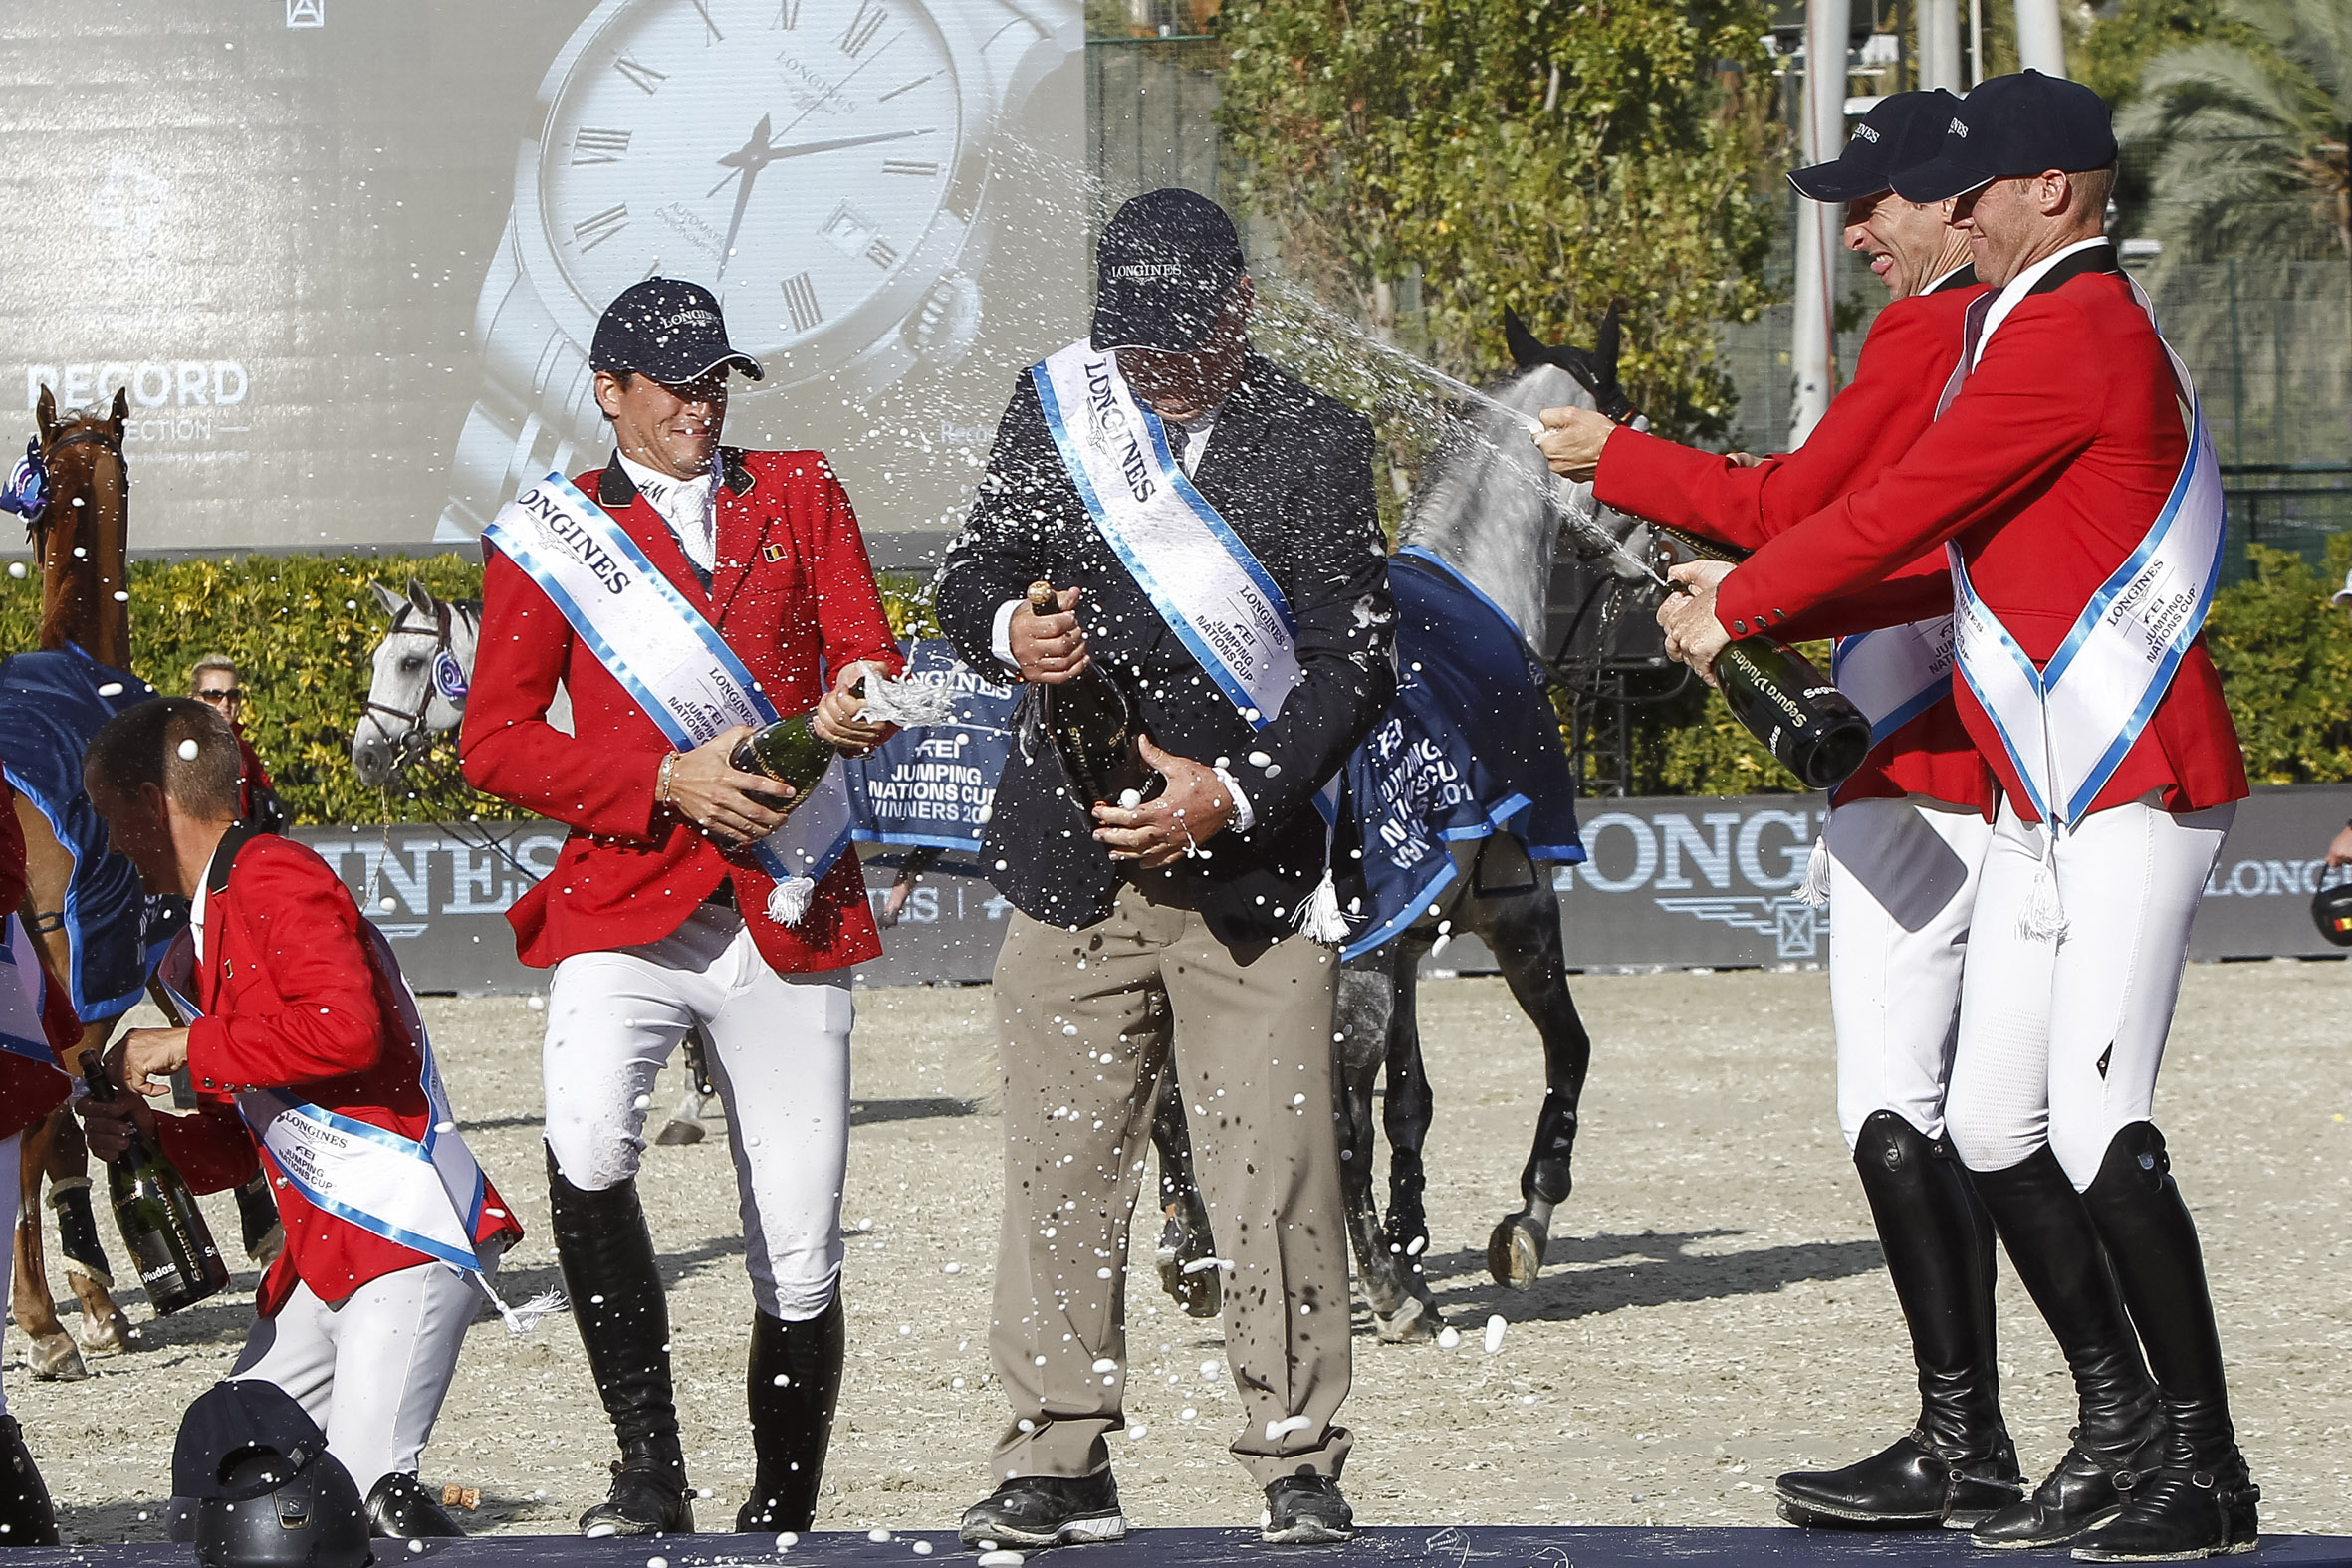 Belgium wins the Longines FEI Nations Cup